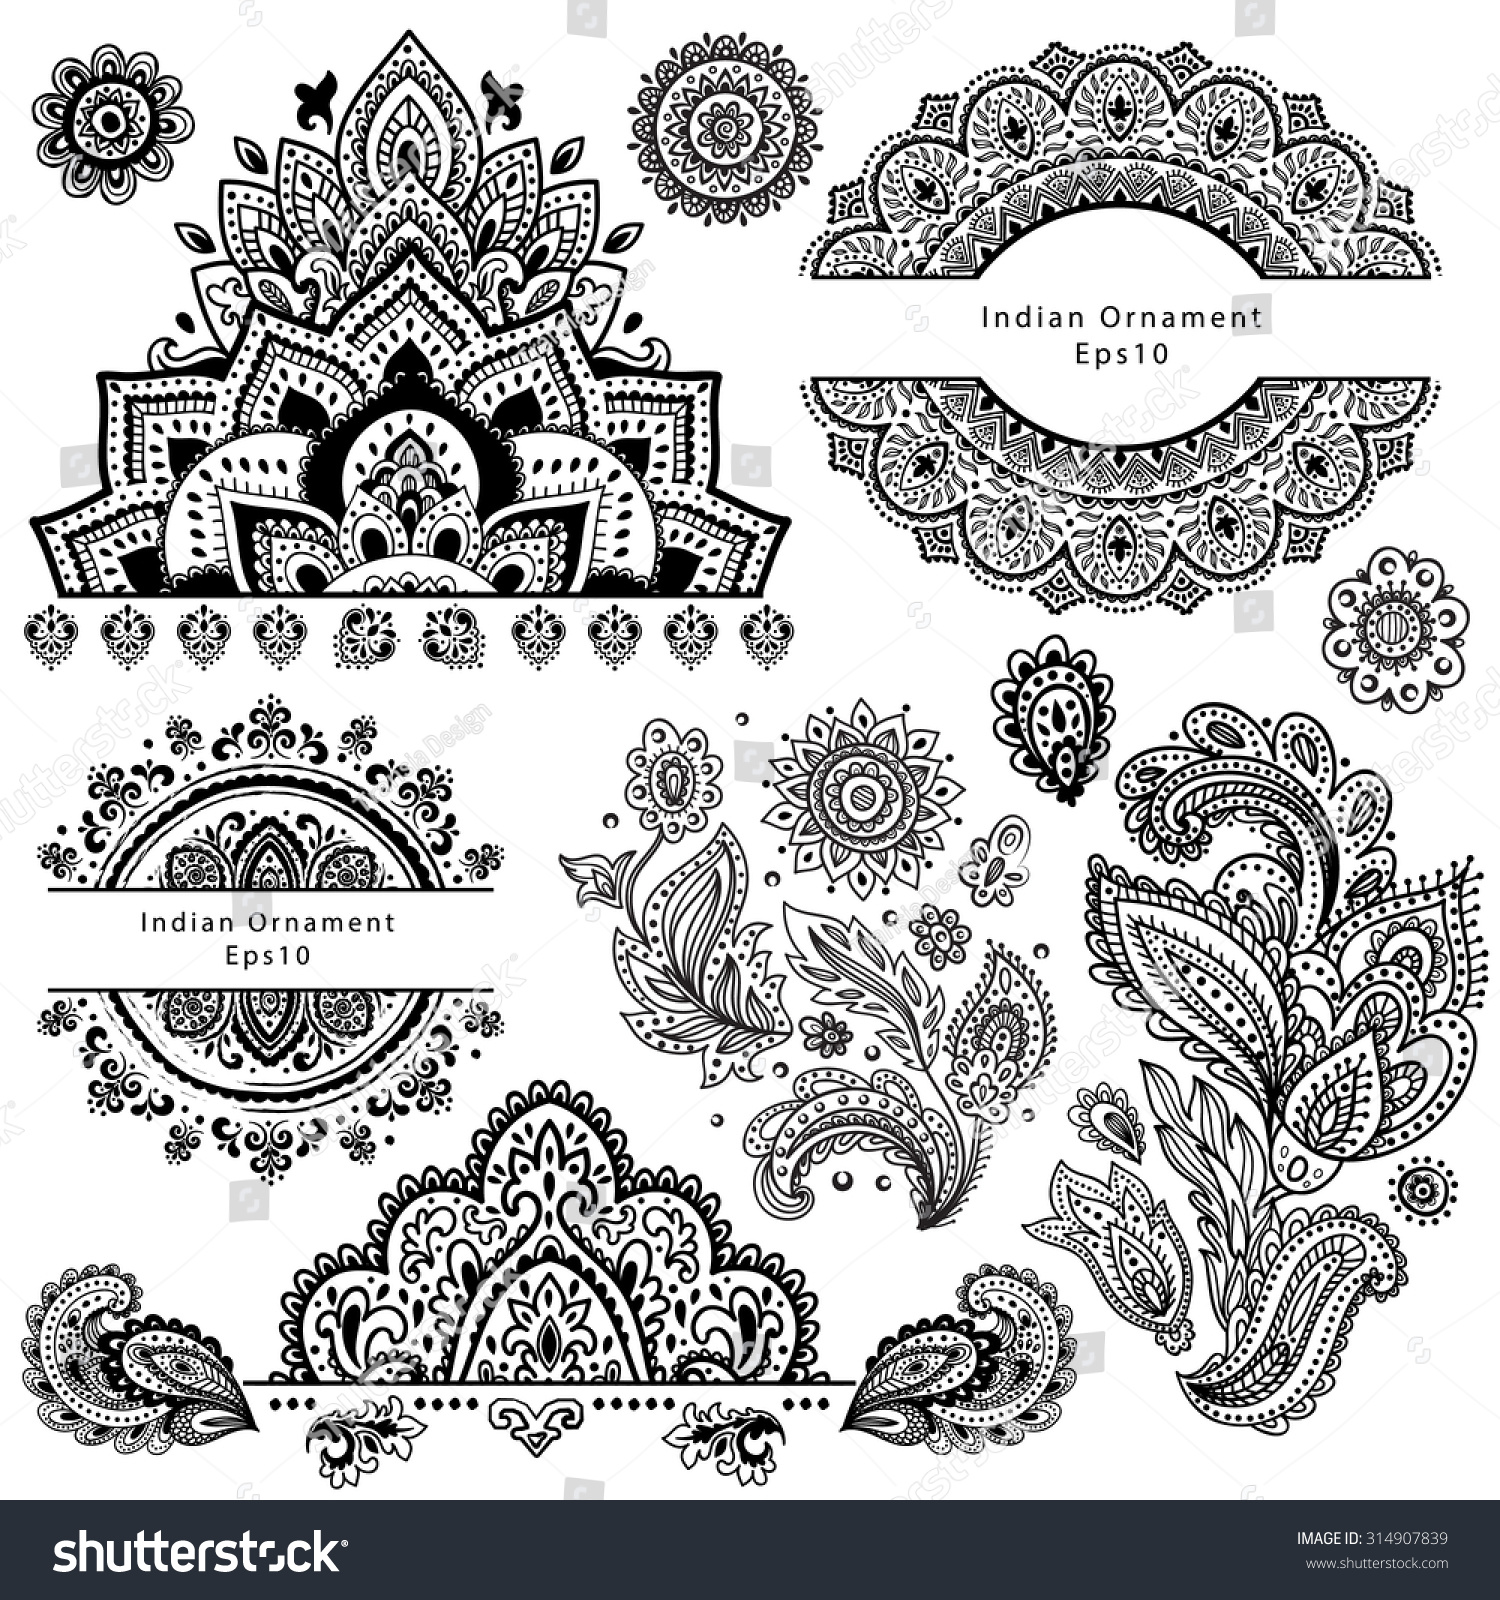 Set Ornamental Indian Elements Symbols Stock Vector Hd Royalty Free